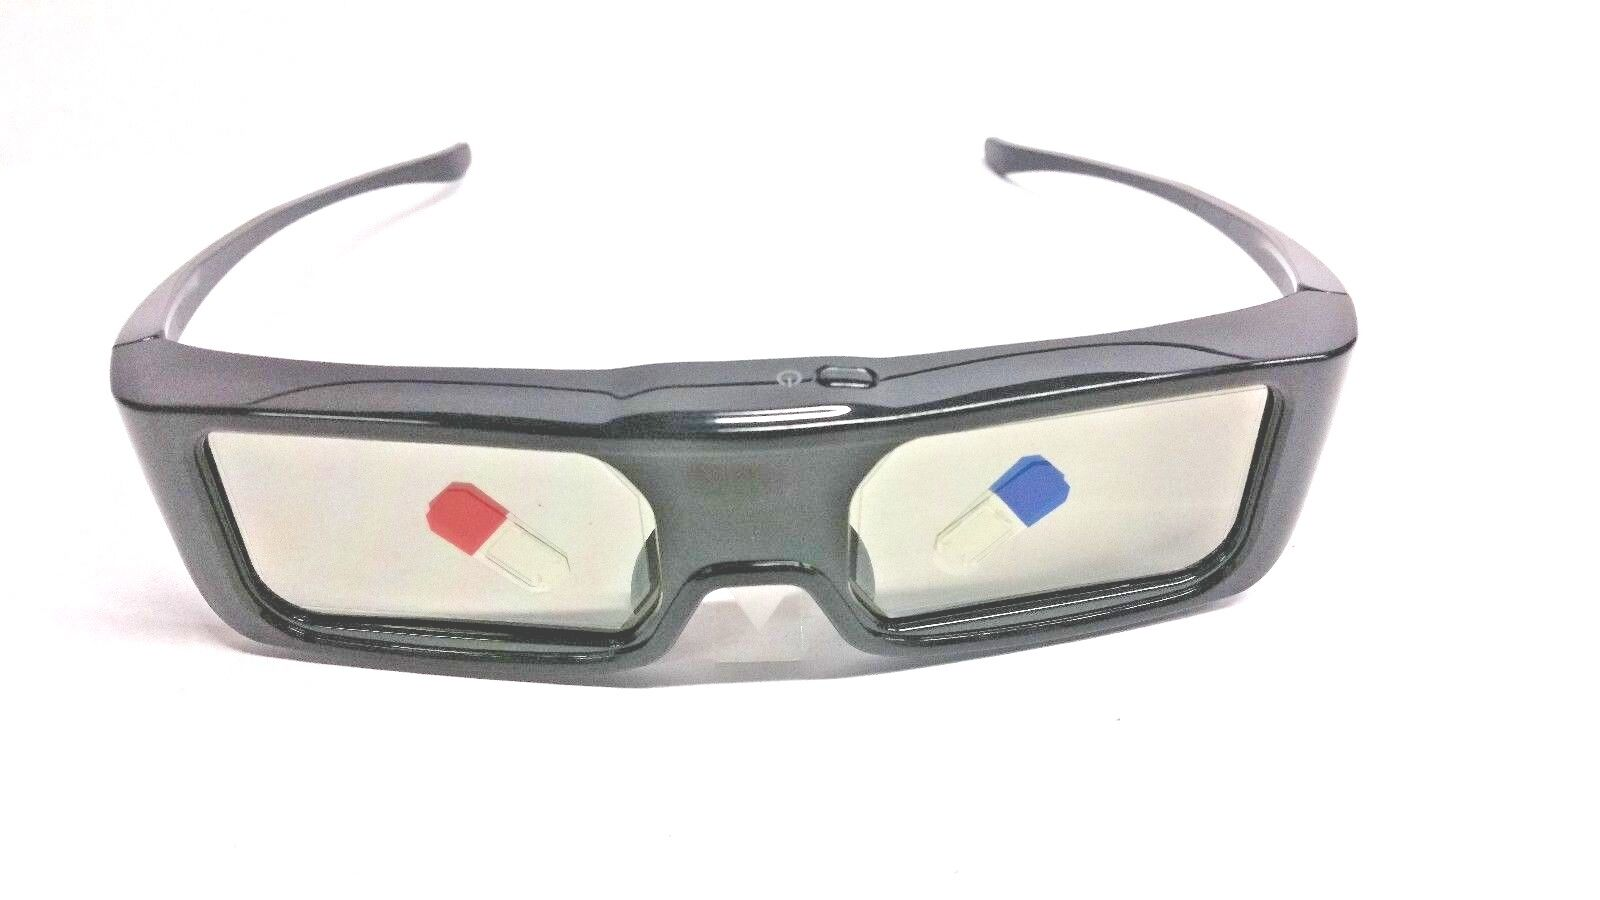 Panasonic Active 3d Glasses Tc-p65vt60 Tc-p60zt60 Tc-p65zt60